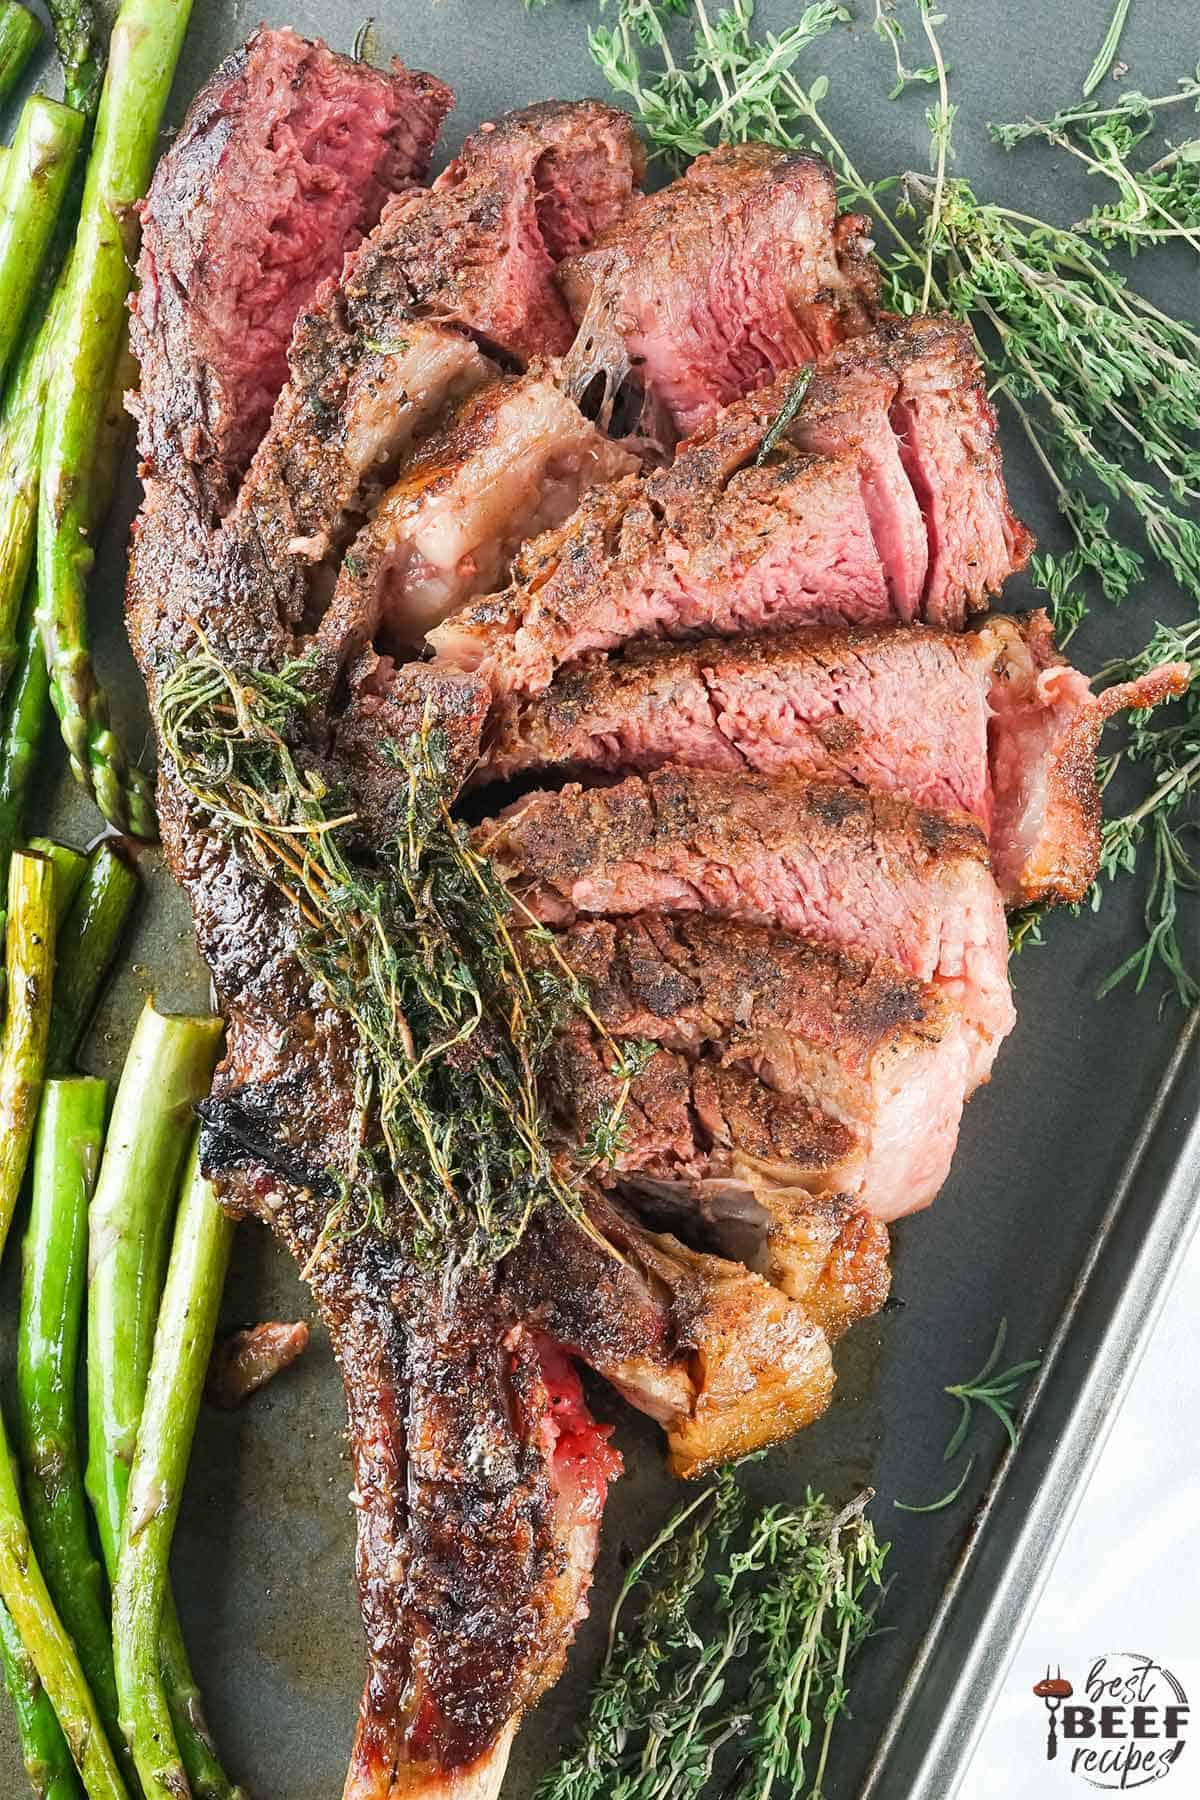 Sliced tomahawk steak overhead shot on a tray with asparagus and thyme